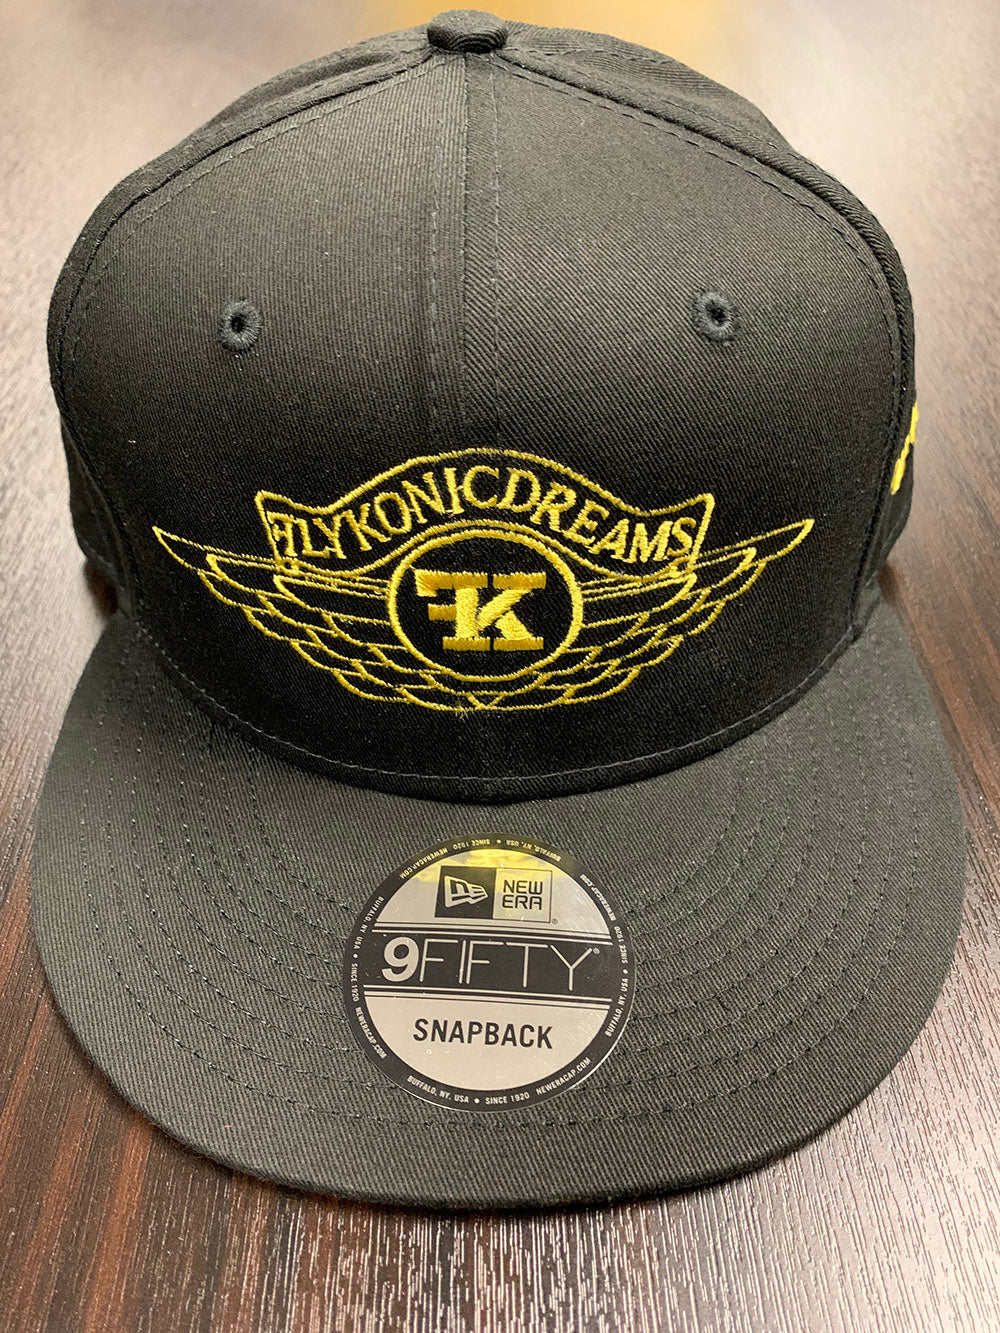 Flykonic Dreams SnapBack Hat with Yellow Stitching